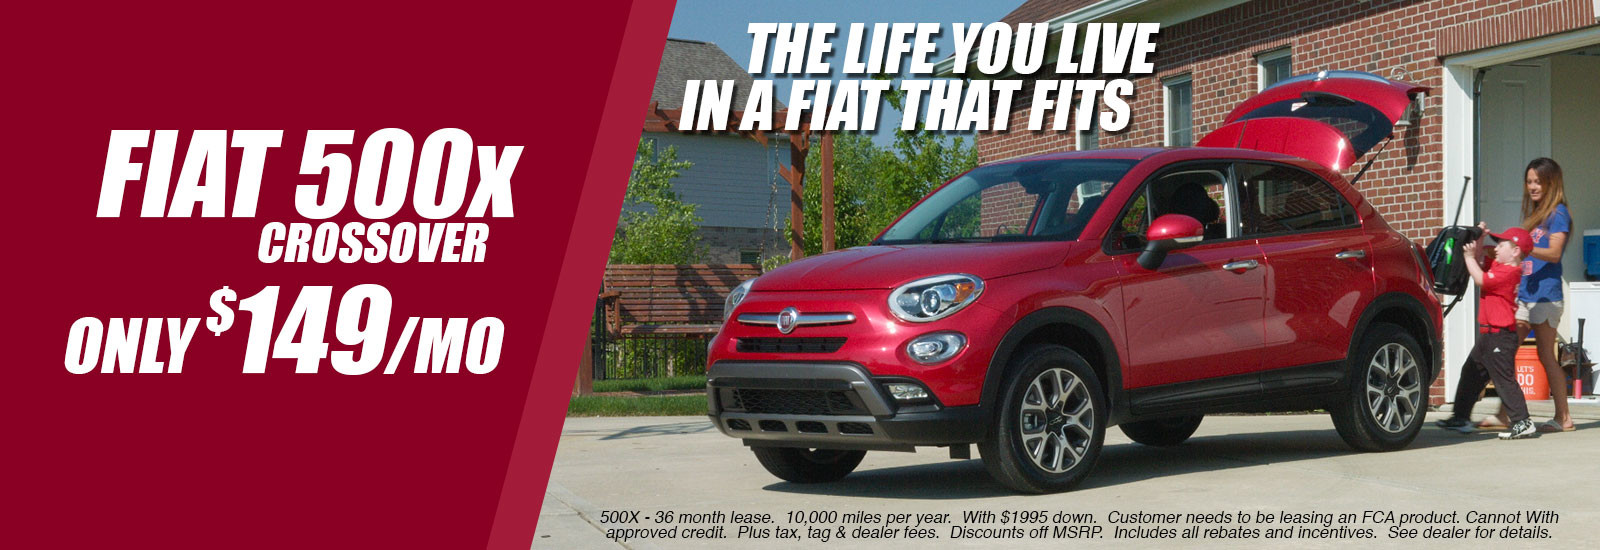 Fiat500x_YourStyle